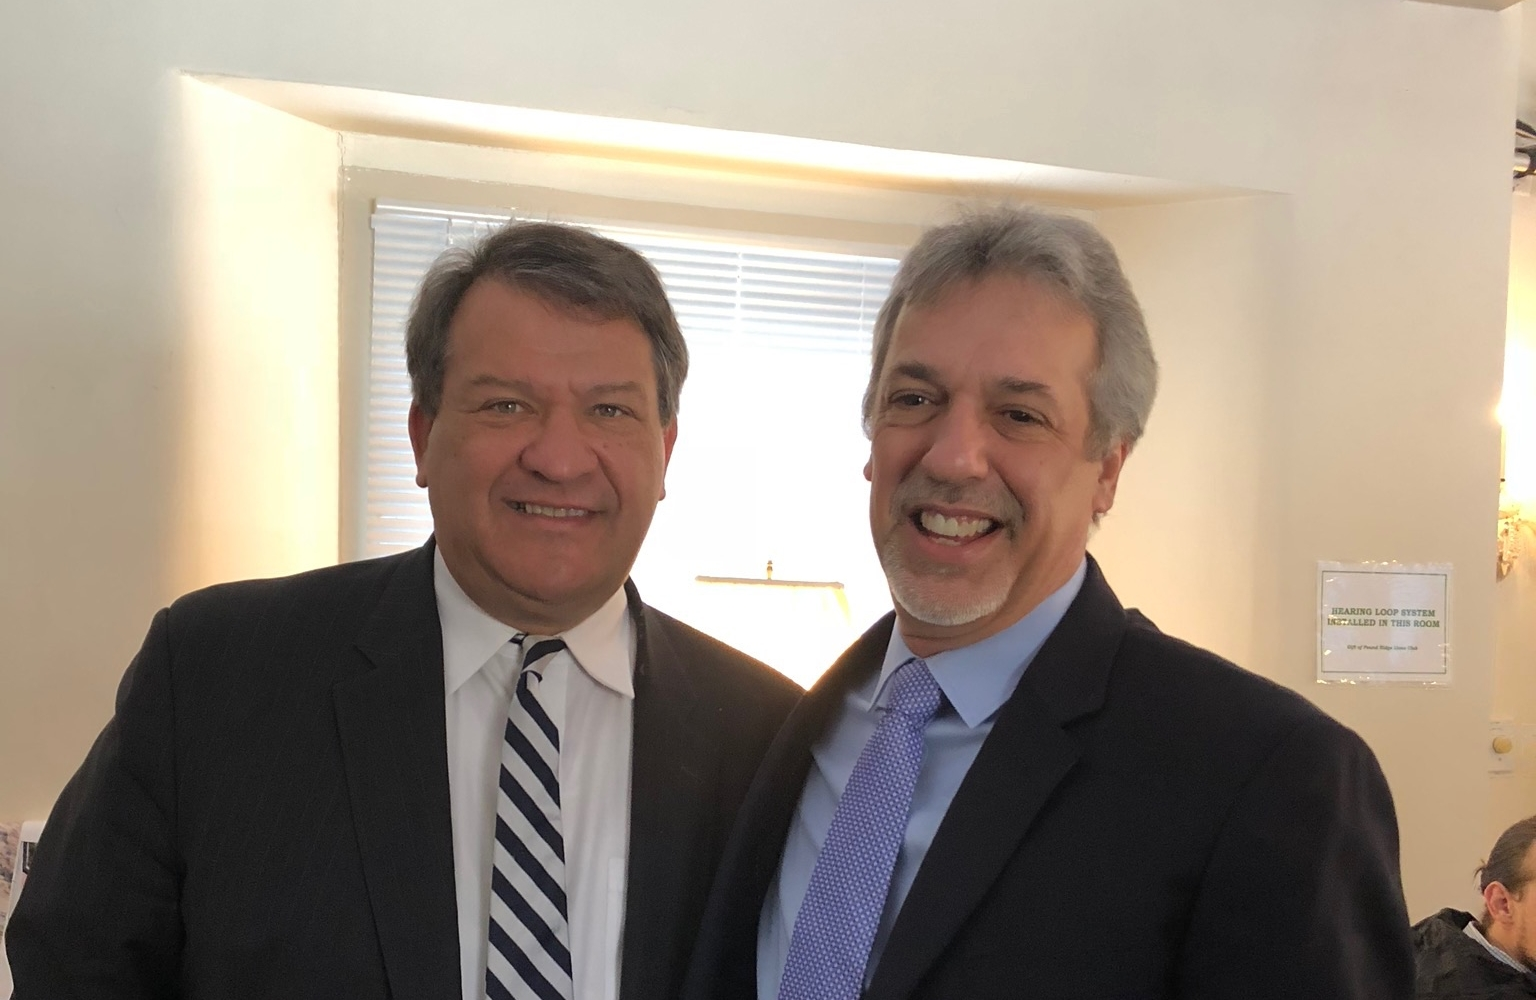 Westchester County Executive George Latimer with Pound Ridge Town Supervisor Kevin Hansan.